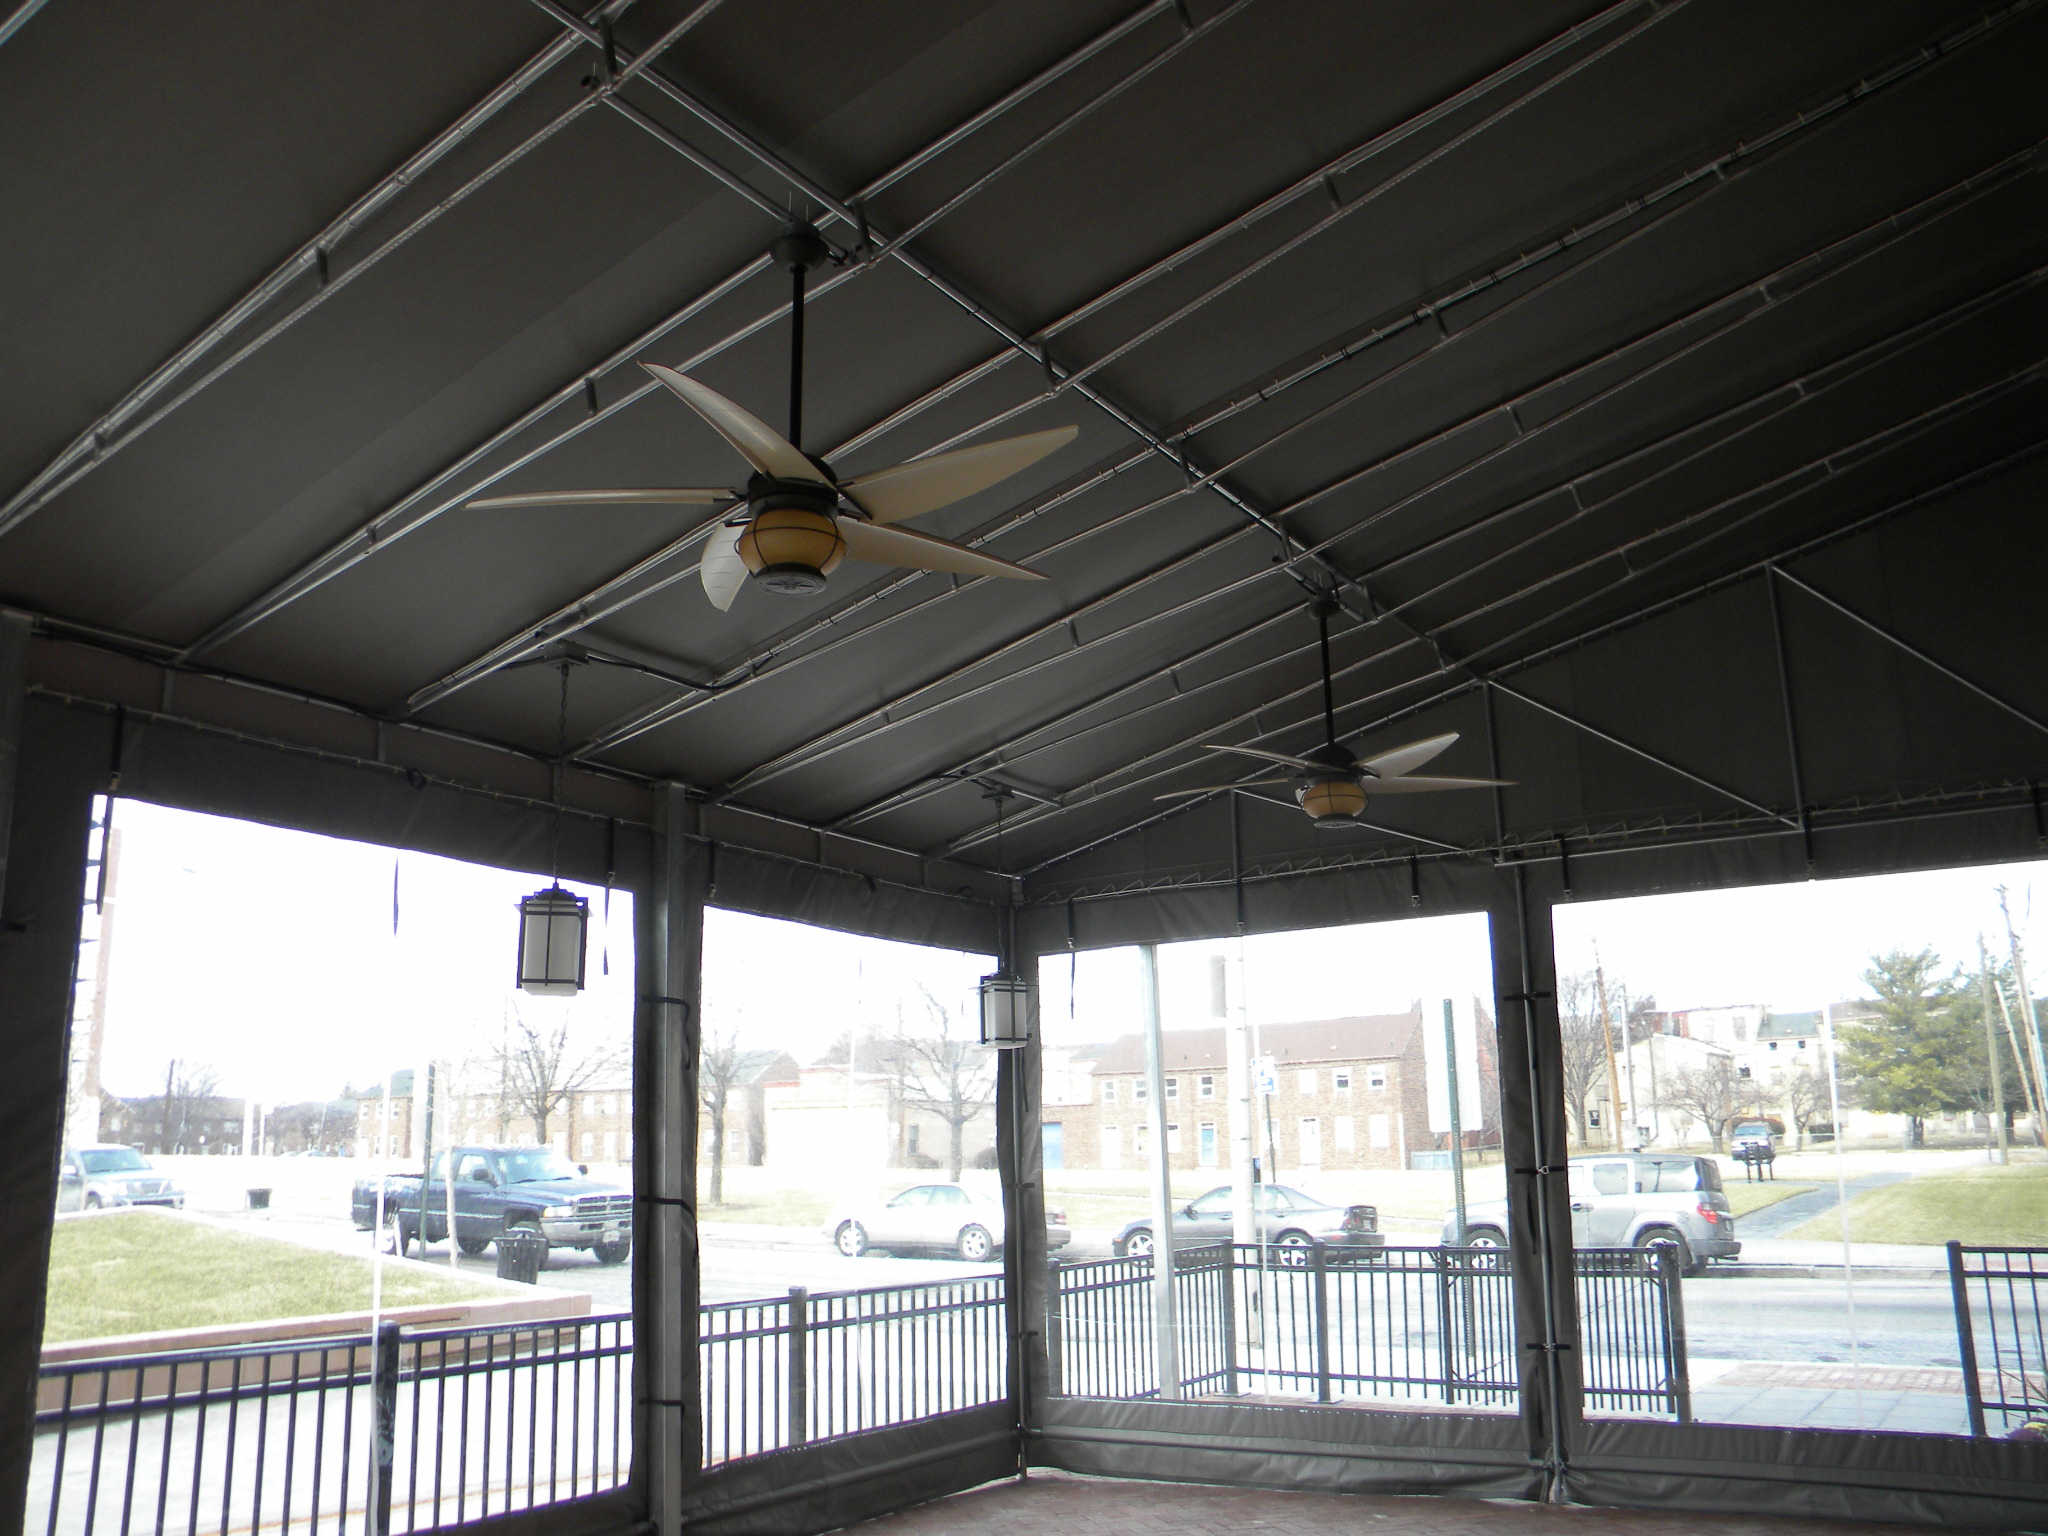 Hoffman Awning- Room Addition using Clear Curtains Baltimore This room addition included heating and ceiling fans Call A. Hoffman Awning in Baltimore  to add space to your restaurant    410-685-5687